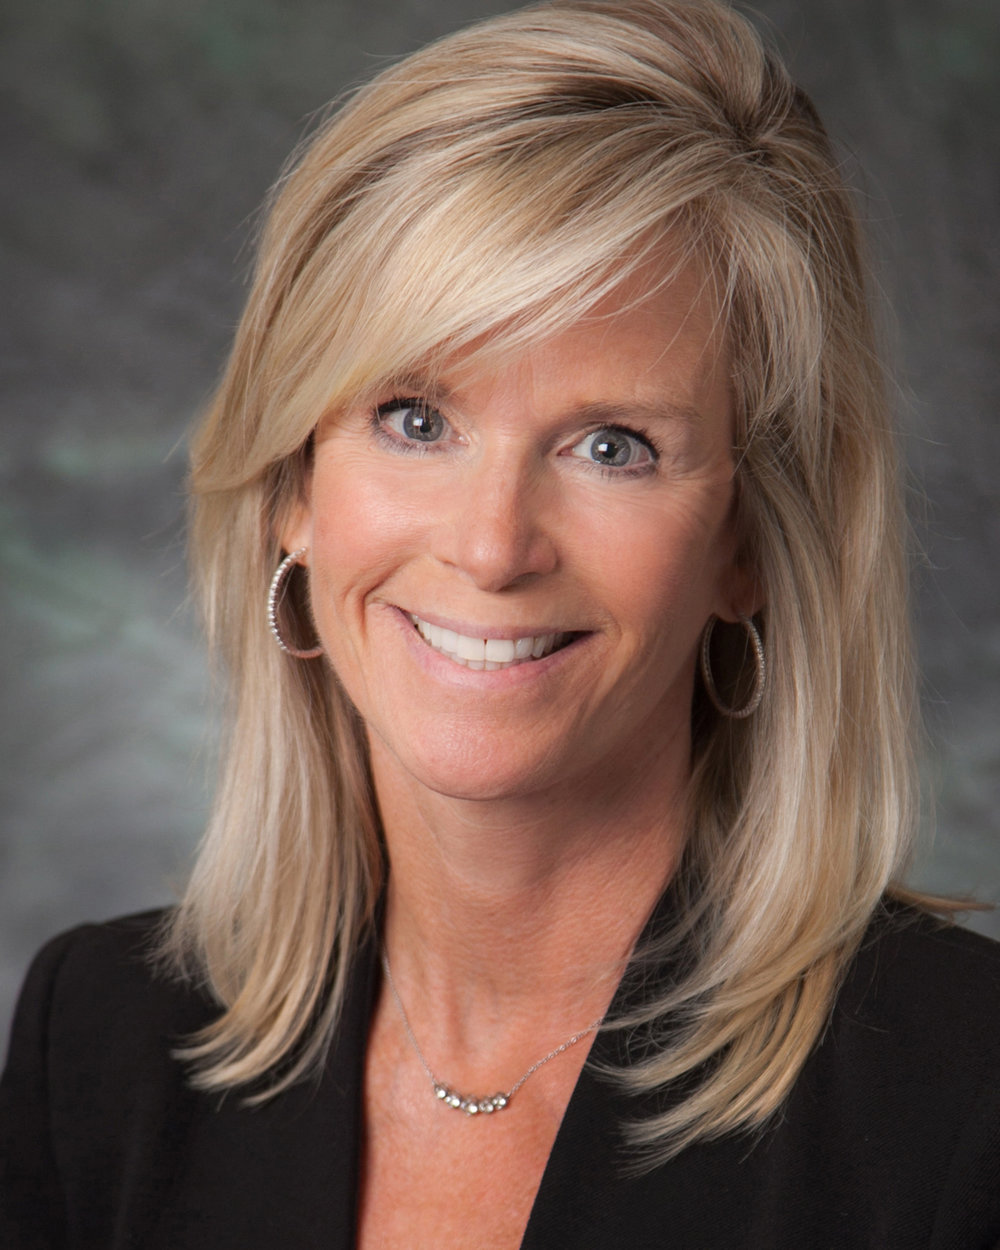 ModeratorMarcia Davies - Mortgage Bankers AssociationCOOMarcia Davies is Chief Operating Officer for the Mortgage Bankers Association (MBA).As COO, Marcia is responsible for ensuring cross organizational alignment and facilitating the implementation of strategic initiatives, as well as maintaining oversight of key organizational priorities. She is also the lead strategist for MBA's external activities, providing leadership, guidance and overall management to the public affairs and marketing divisions. In addition, Marcia provides strategic direction and management of MBA's Conferences, Membership, Education, Information Technology and Office Services divisions. She also provides management oversight to and is a Board member of MBA's Opens Doors Foundation. Previously, Marcia worked at the U.S. Department of Housing and Urban Development (HUD), as Senior Advisor to the Assistant Secretary for Housing and Federal Housing Commissioner. She directed HUD's industry relations program to strengthen relationships, garner support, streamline communications and resolve policy and regulatory issues. Before joining HUD, Marcia spent 21 years at Freddie Mac, where she held a variety of officer positions in communications, customer outreach, marketing, servicer relations and policy. Marcia leads MBA's networking platform for women in the real estate finance industry,mPower -MBA Promoting Opportunities for Women to Extend their Reach.Marcia is a member of Women in Housing Finance and the International Women's Leadership Association. In 2015, she was honored by HousingWire as one of its 2015 Women of Influence. Marcia is a graduate of the Katharine Gibbs School in Montclair, N.J.